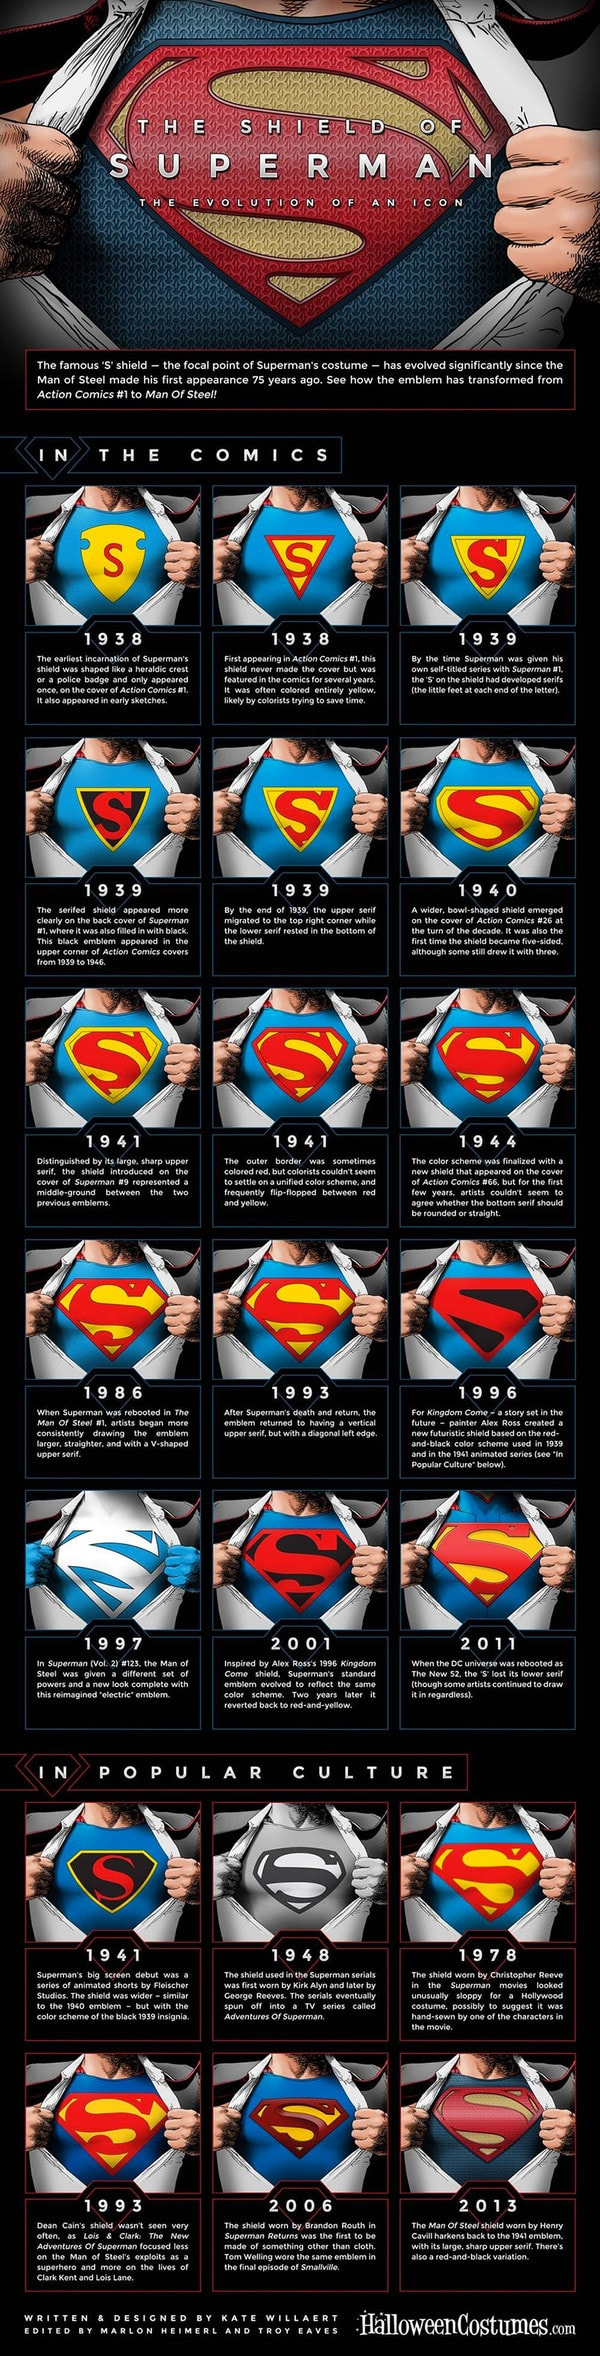 aetherconcept-evolution-logos-superman